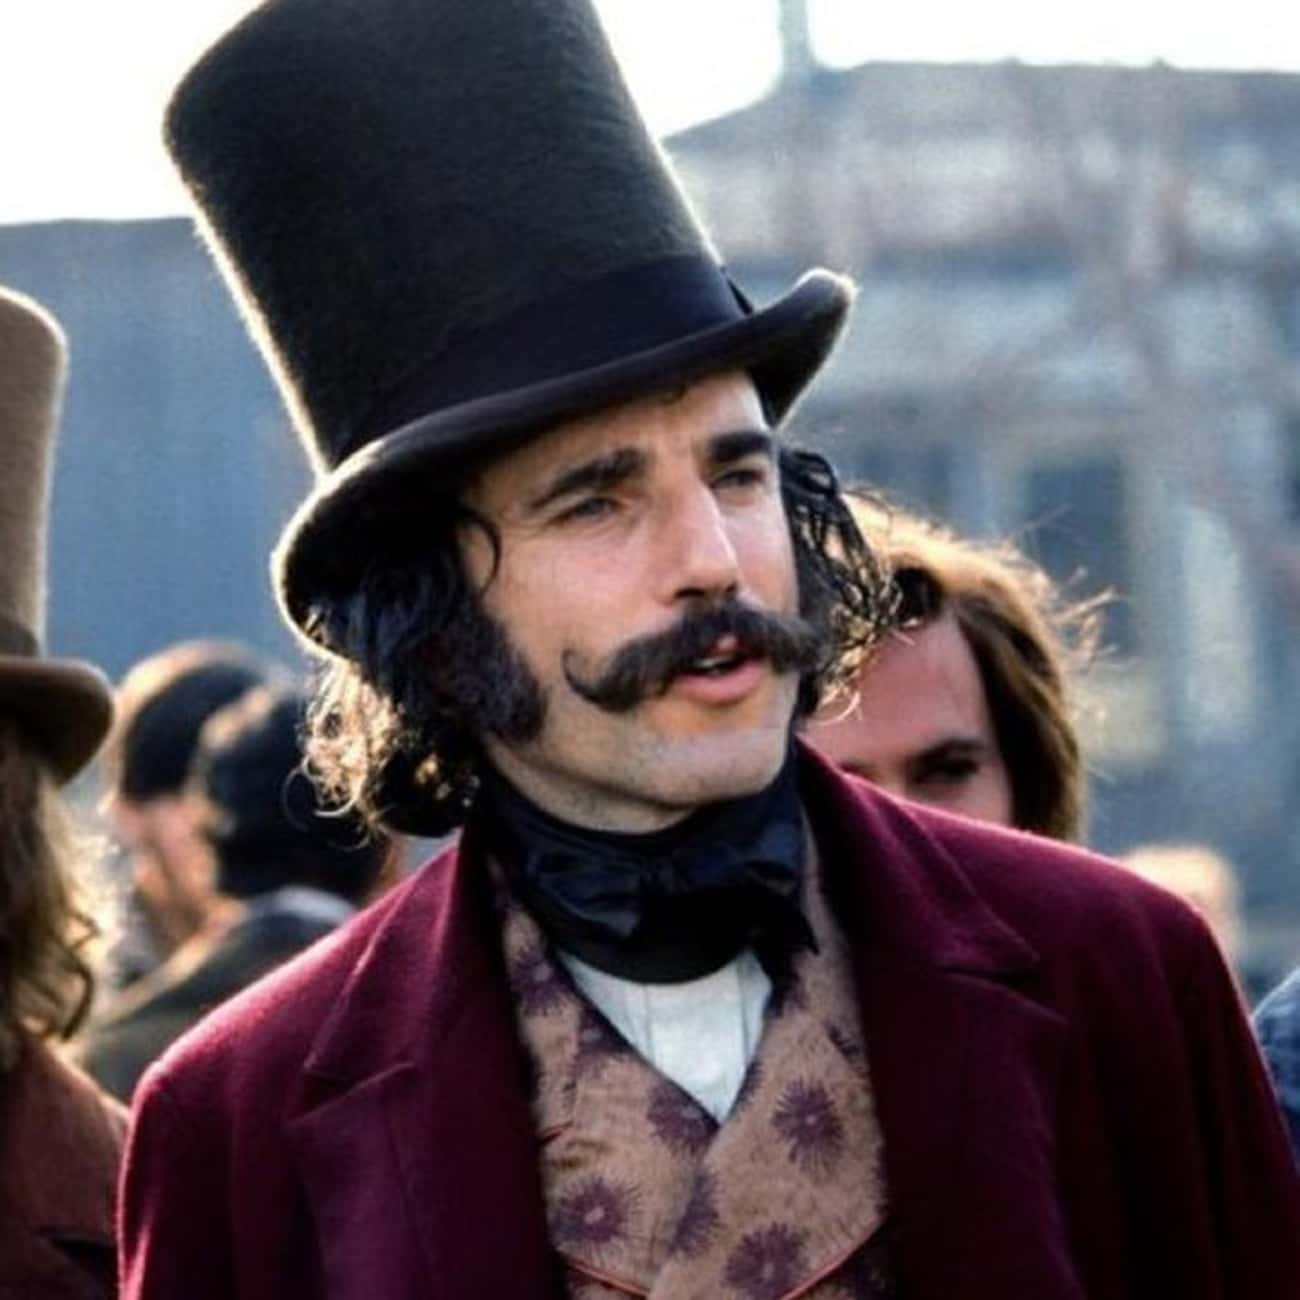 """Bill """"The Butcher"""" Cut is listed (or ranked) 3 on the list The Best Mustaches in Film"""